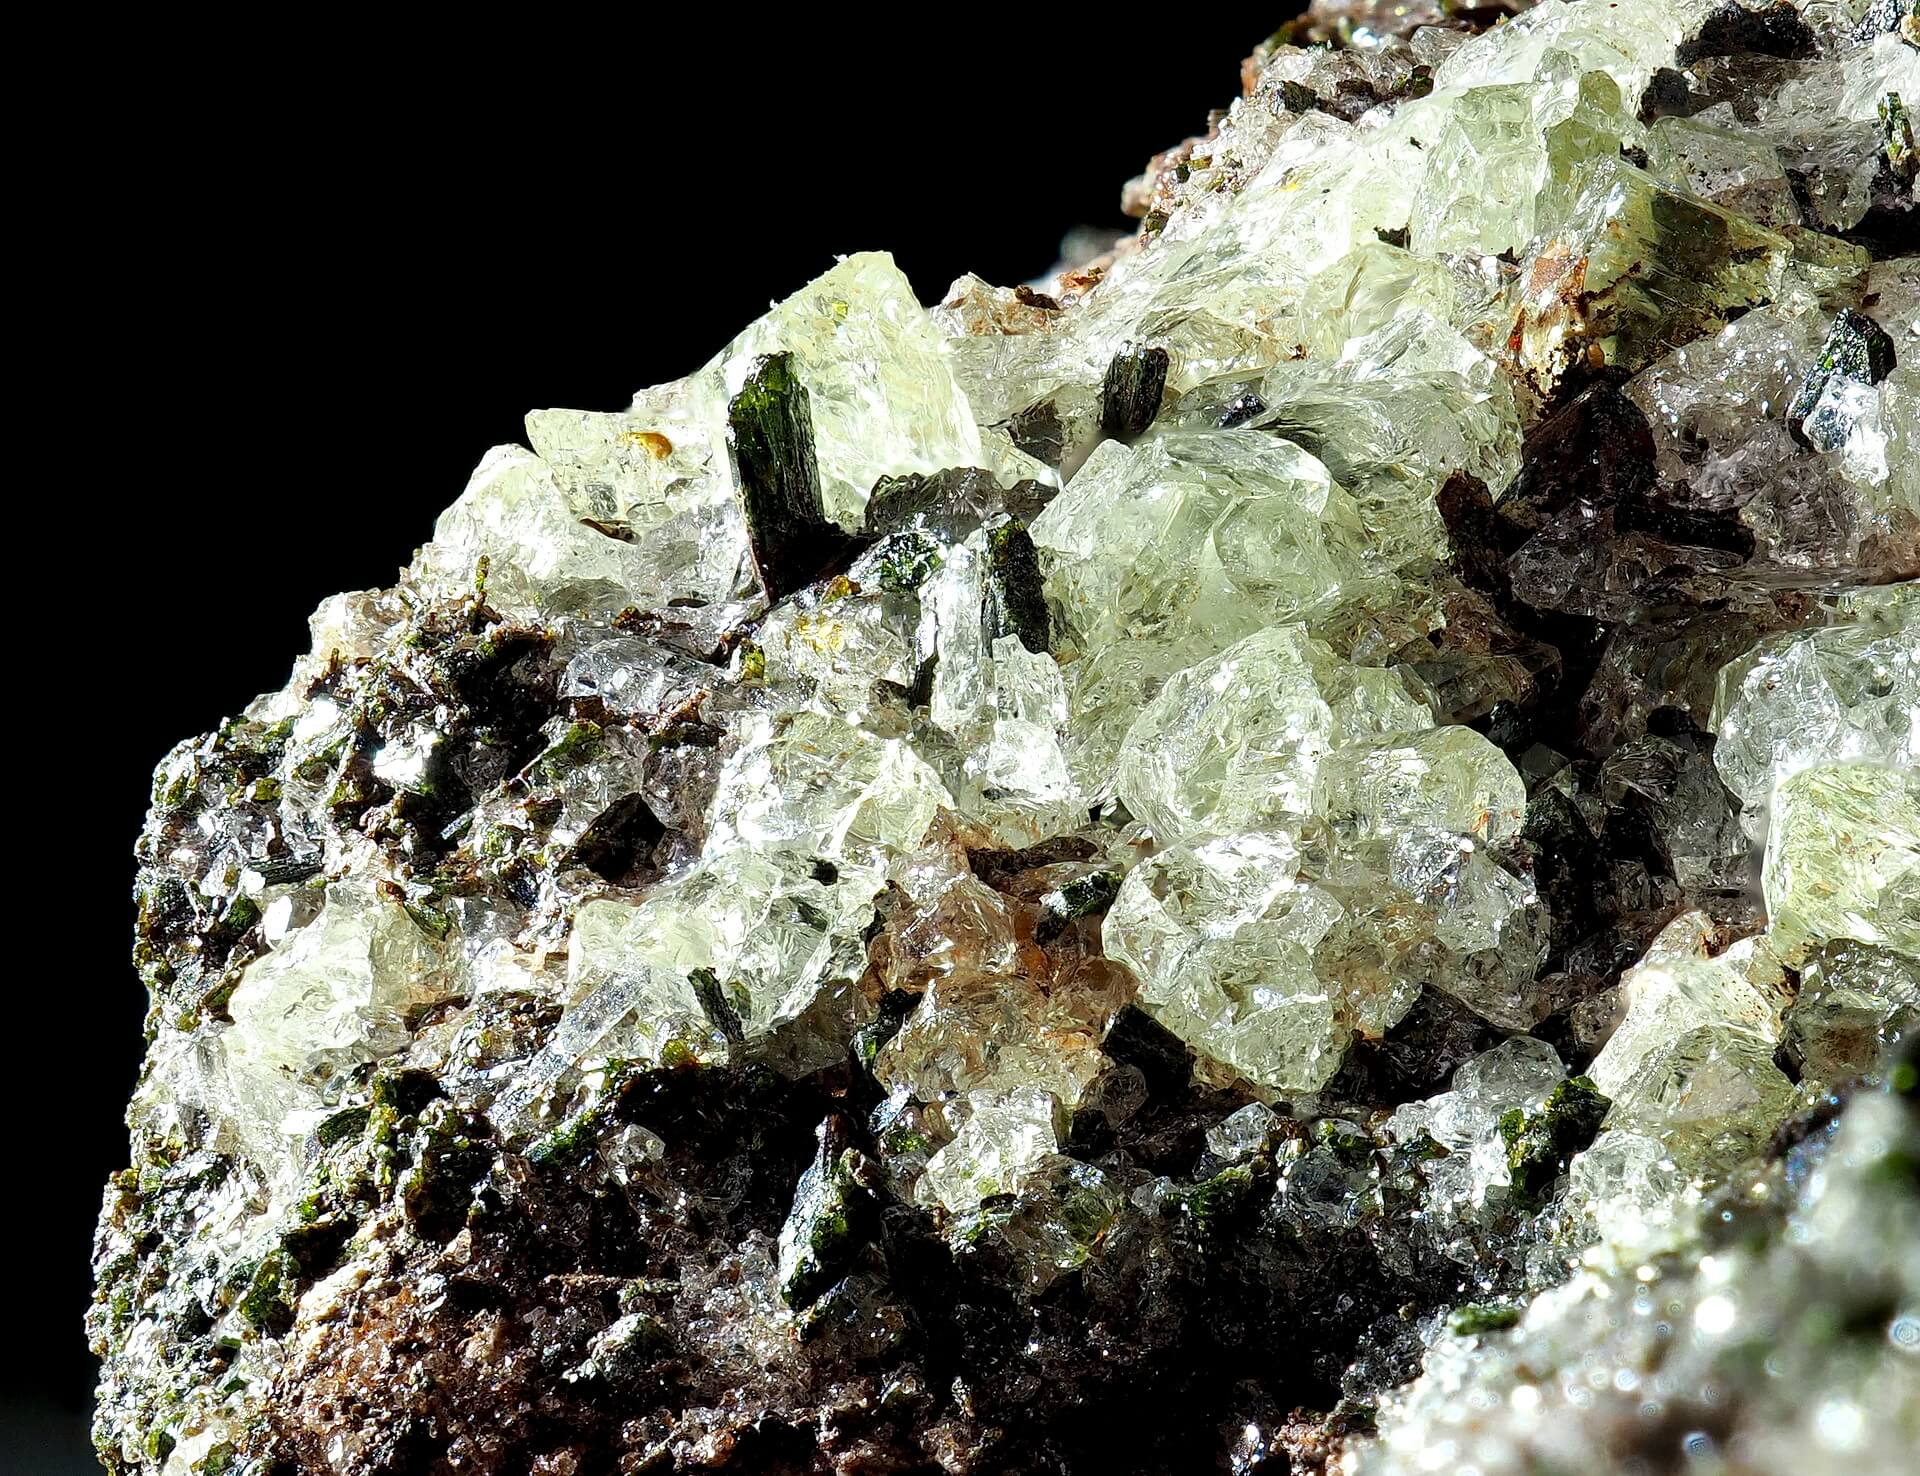 Green Augite crystals surrounded by Calcite.